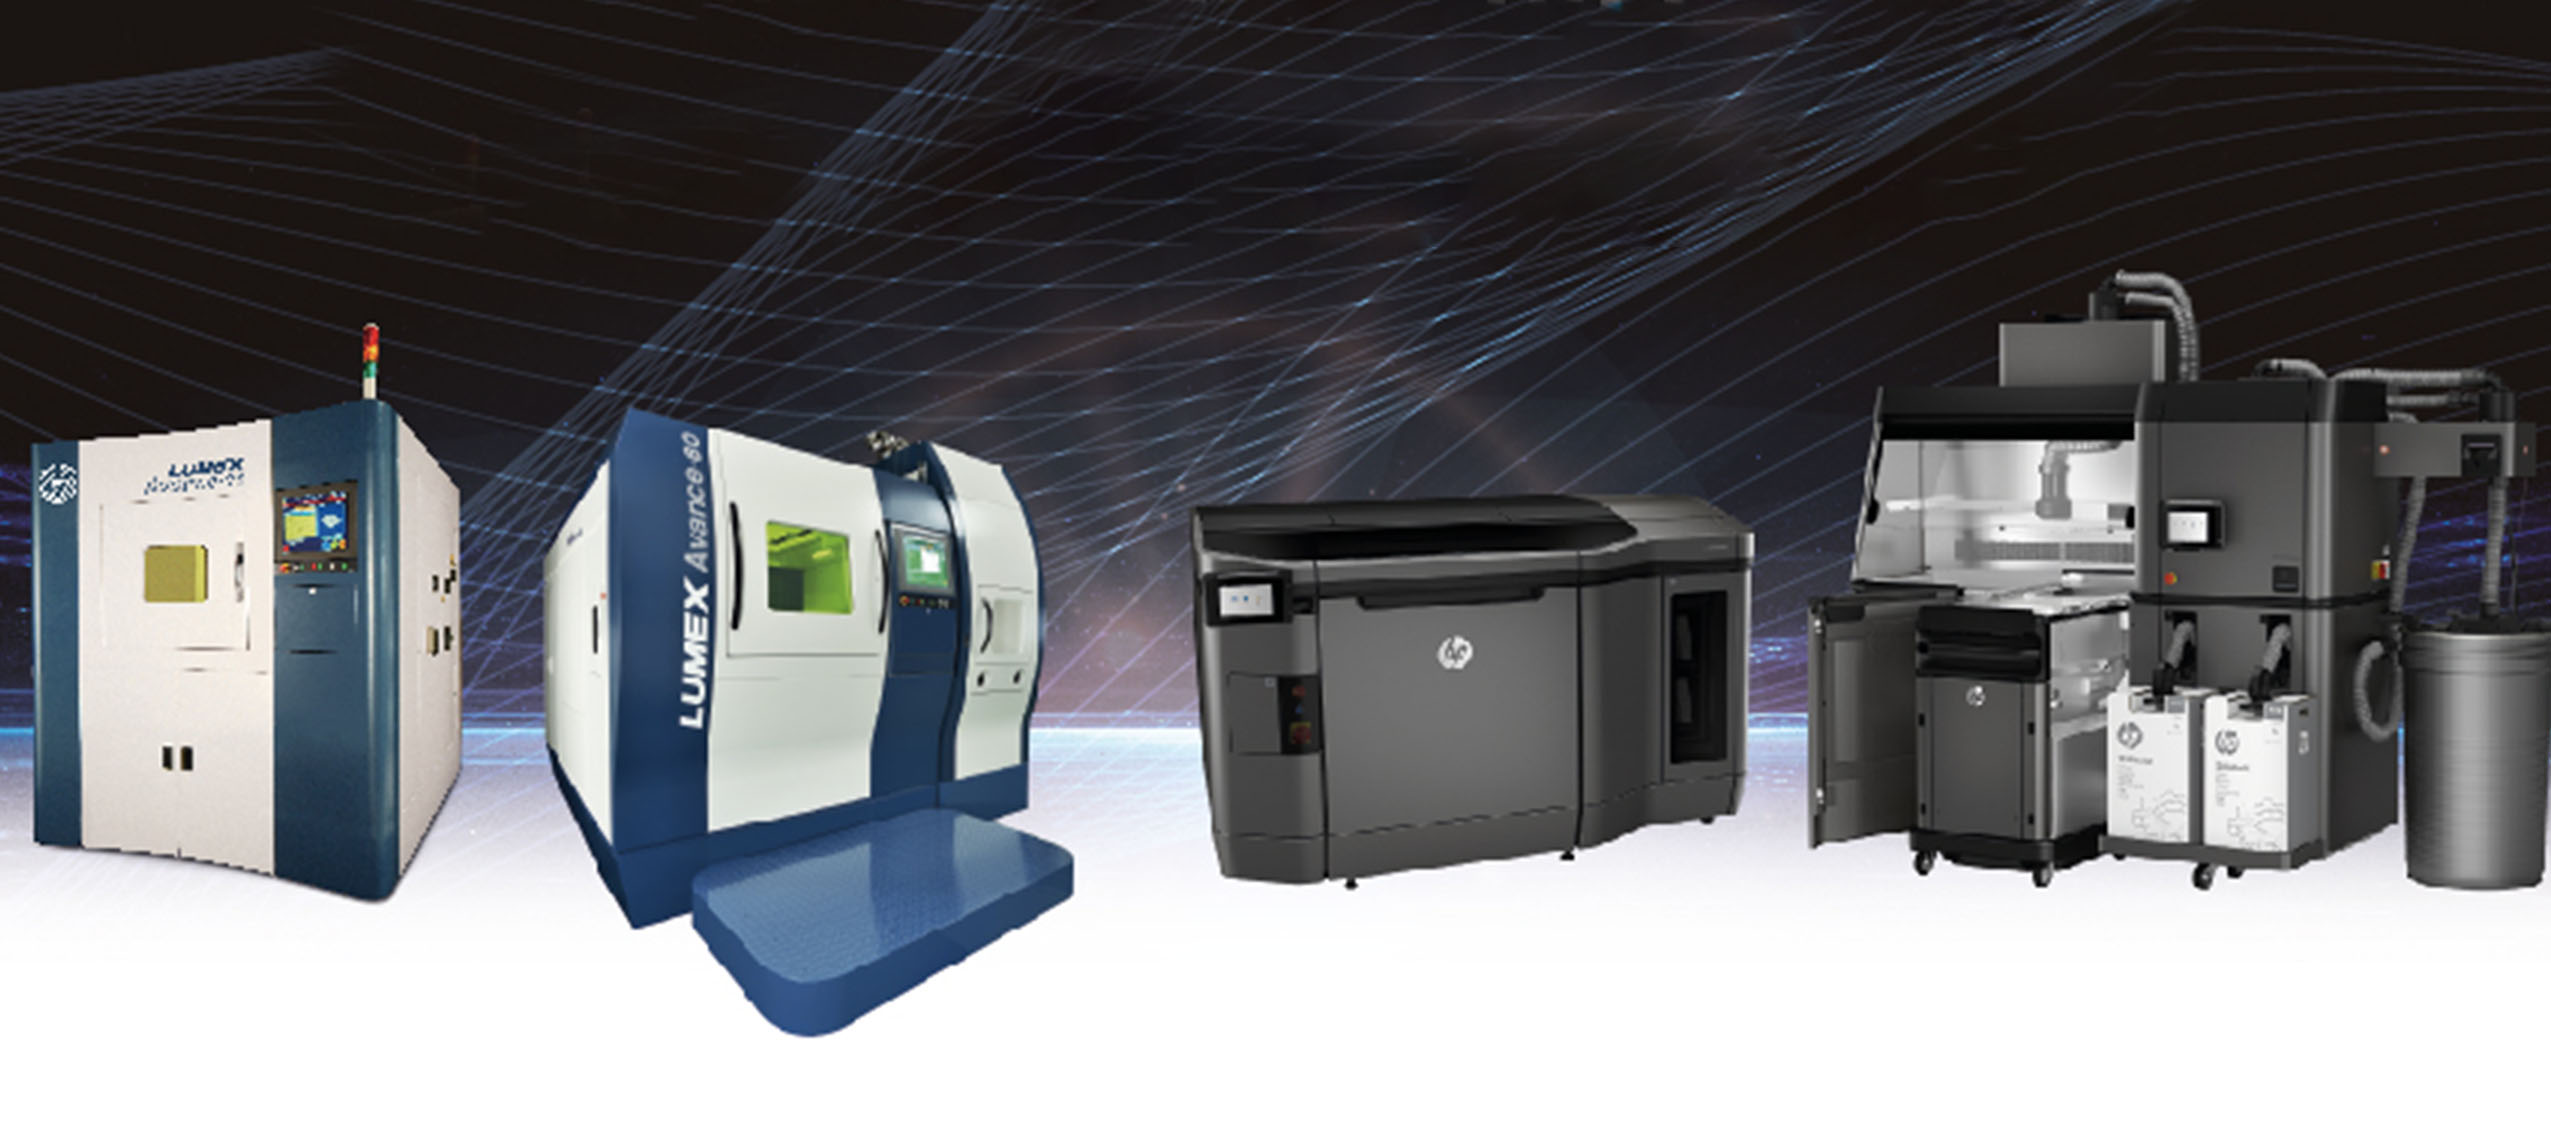 MAQUINSER is focusing on Additive Manufacturing